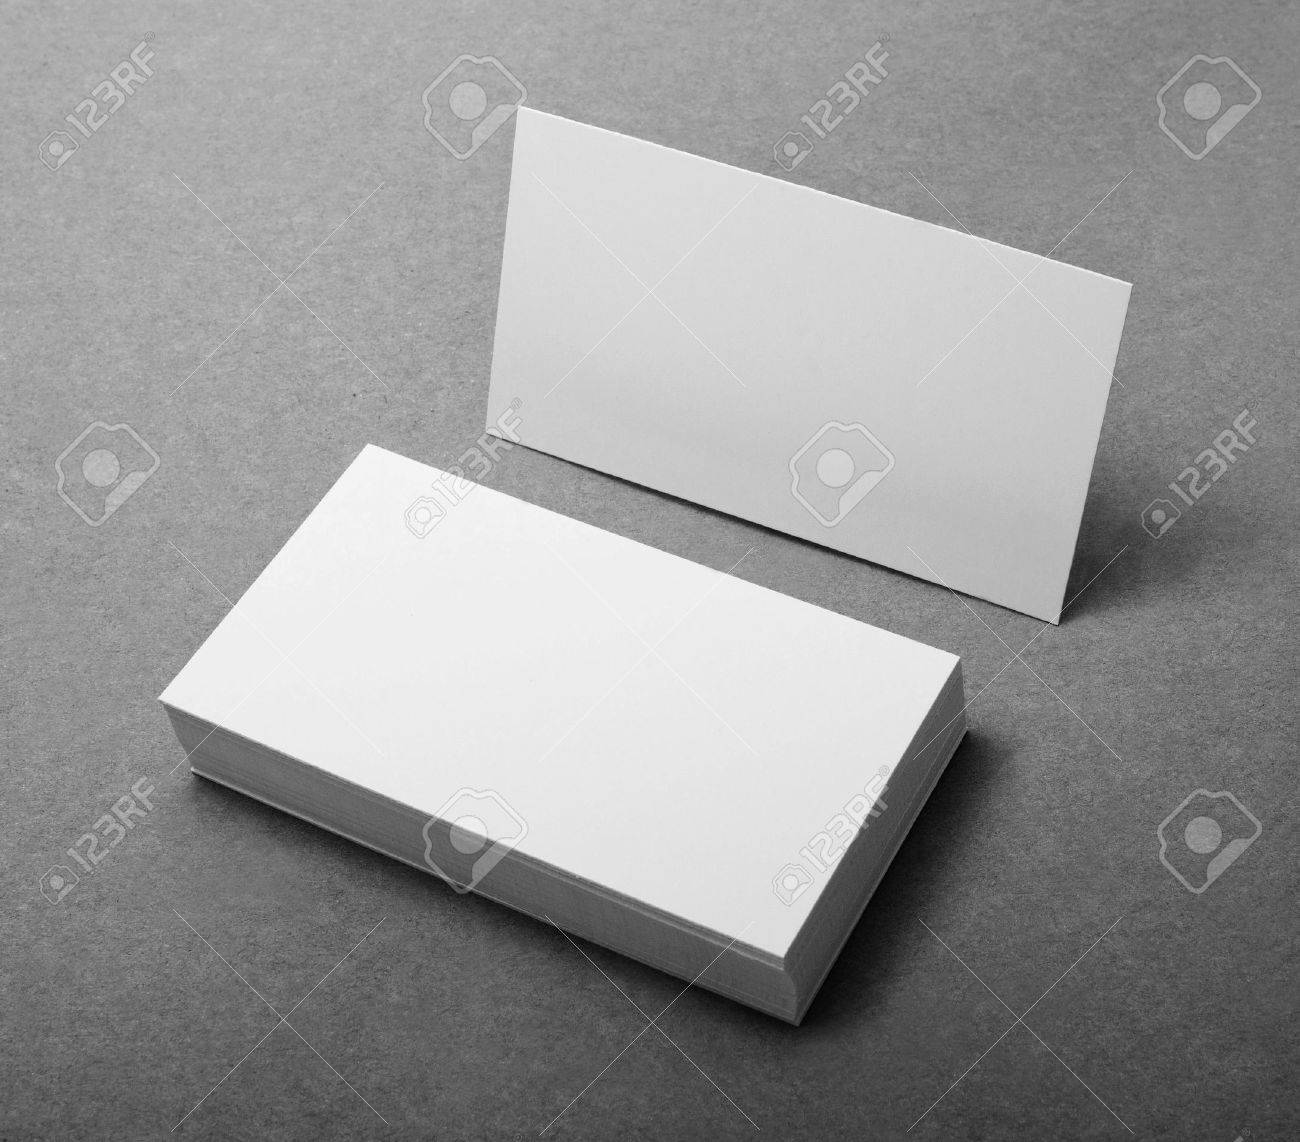 Blank Business Cards, Identity Design, Corporate Templates, Company ...